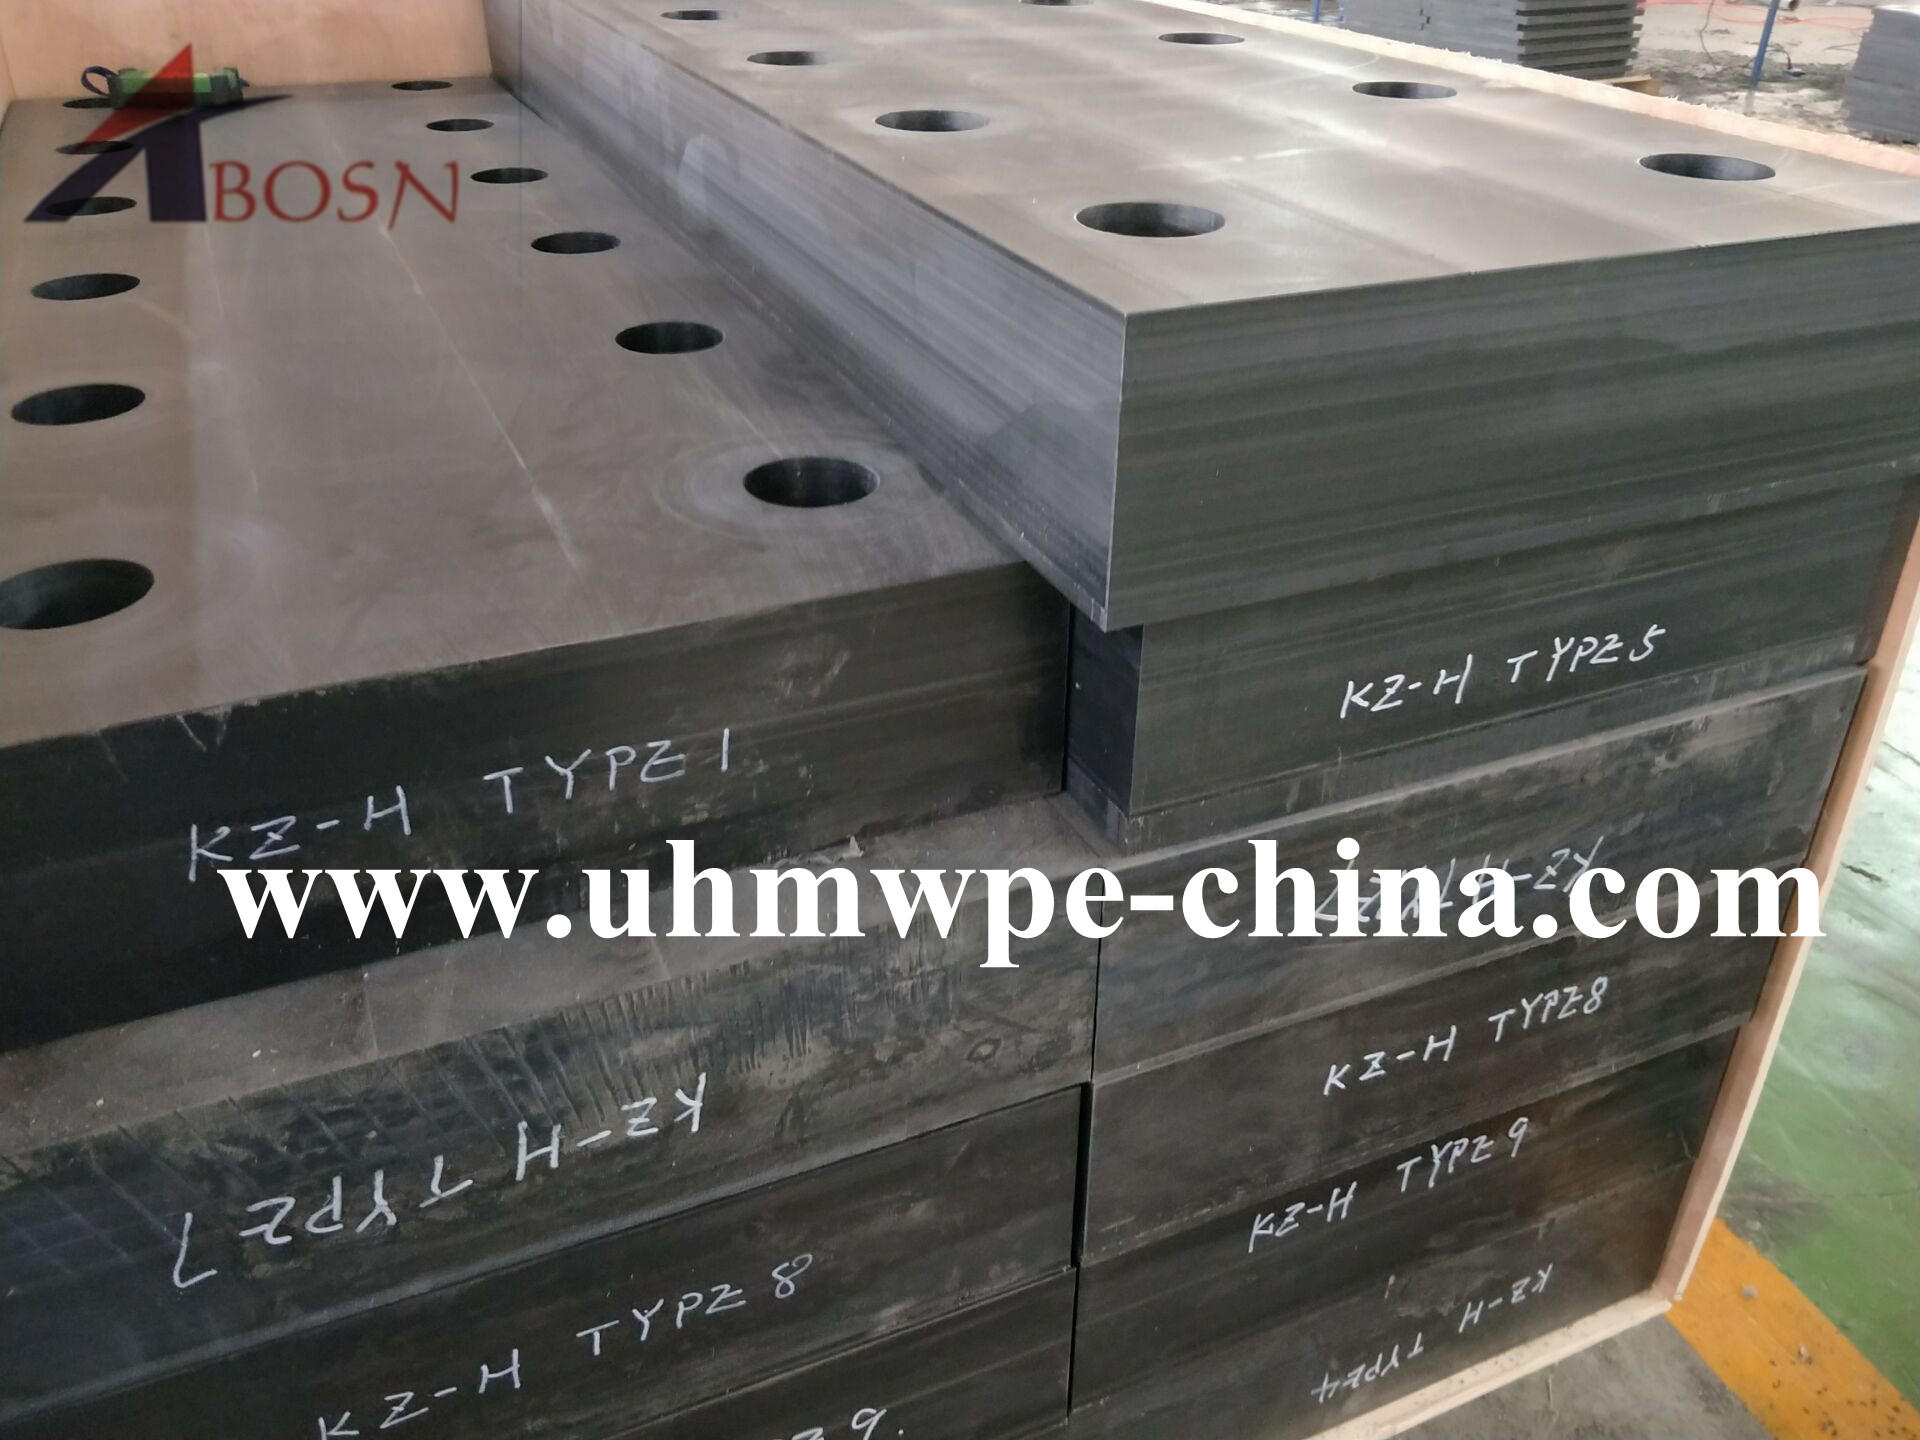 UHMWPE Fender Panel Strip with Chamfers Holes